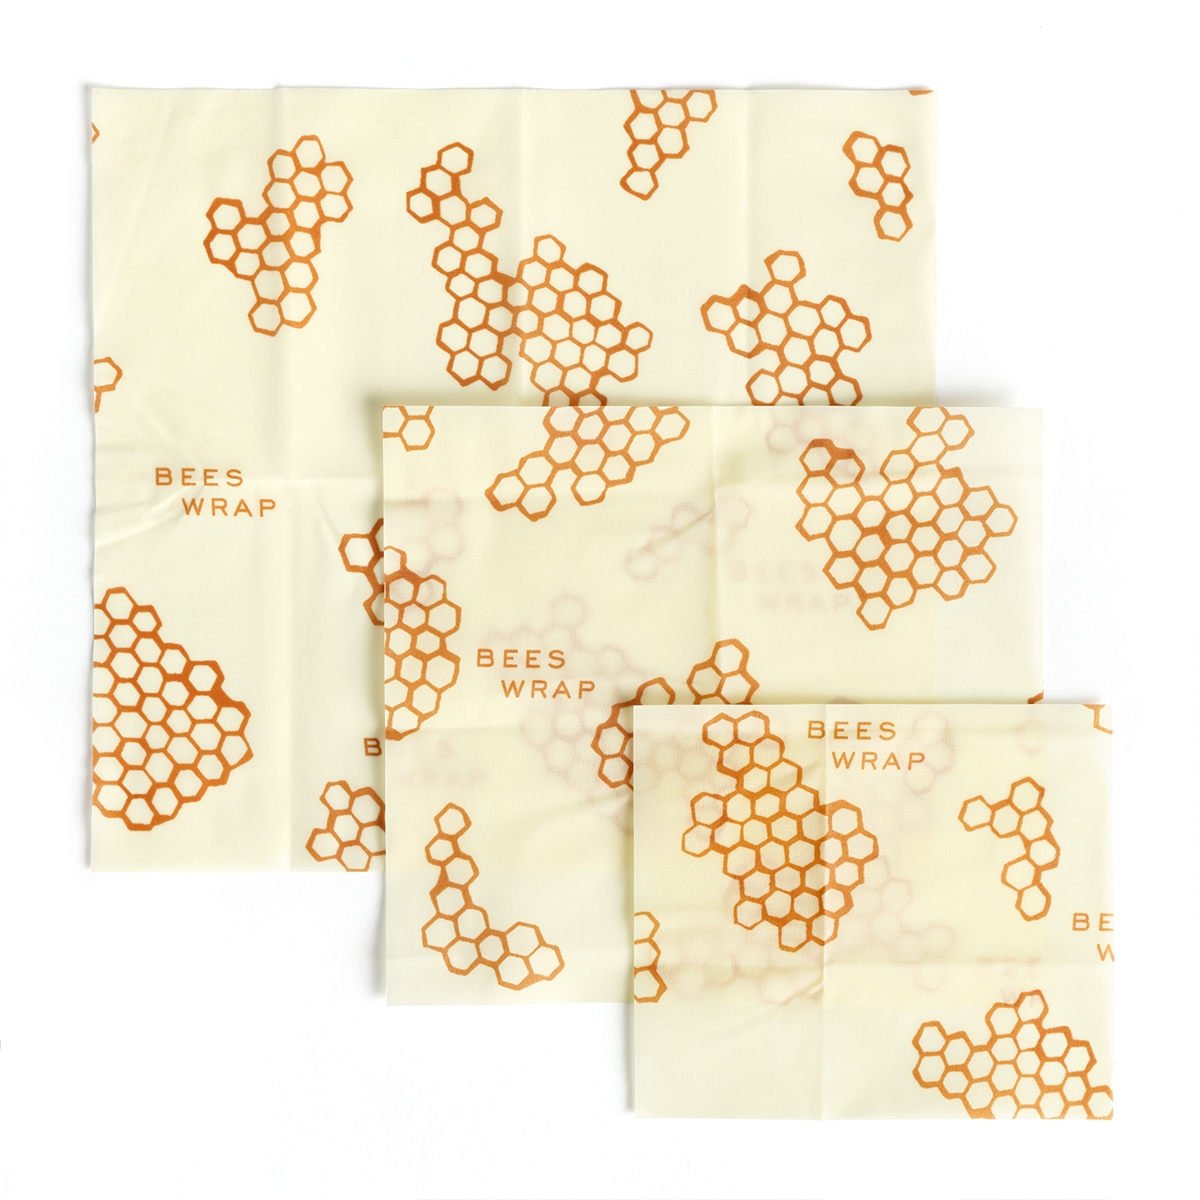 Honeycomb Reusable Food Wraps